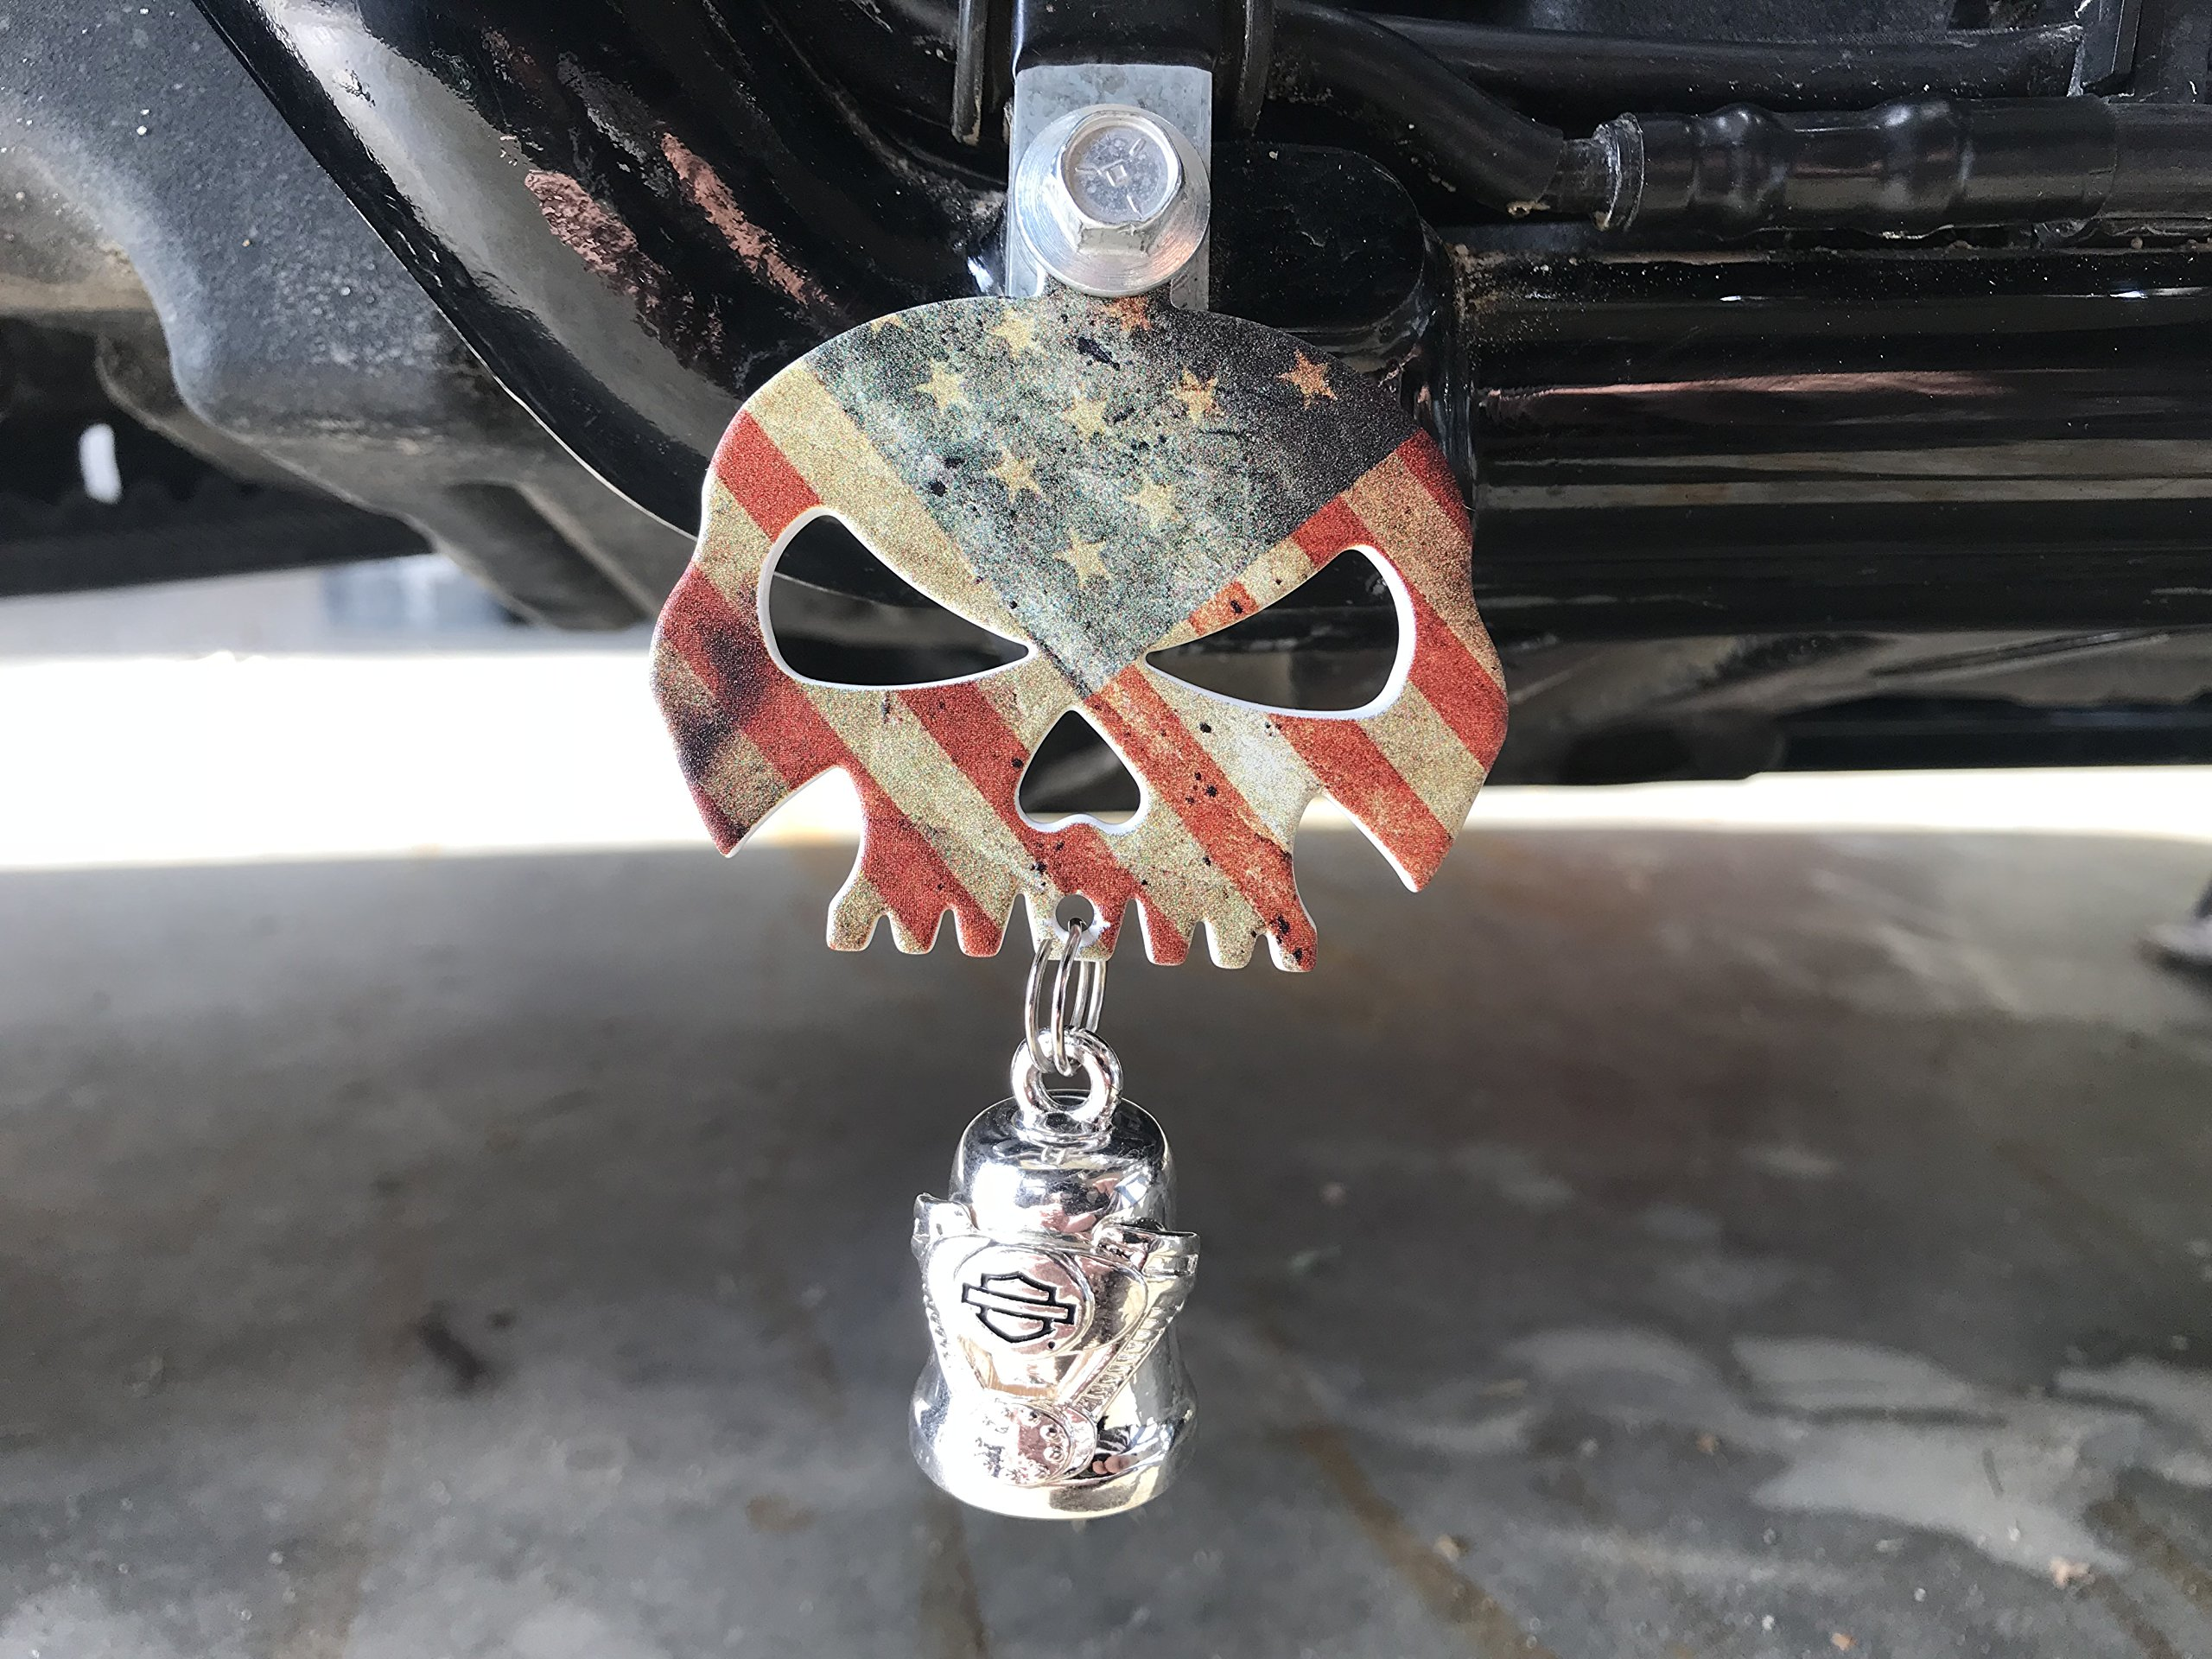 Rustic American Flag Skull Bell Hanger/Mount for Motorcycle Bolt & Ring Included fits all bikes Road King Street Glide Harley Davidson